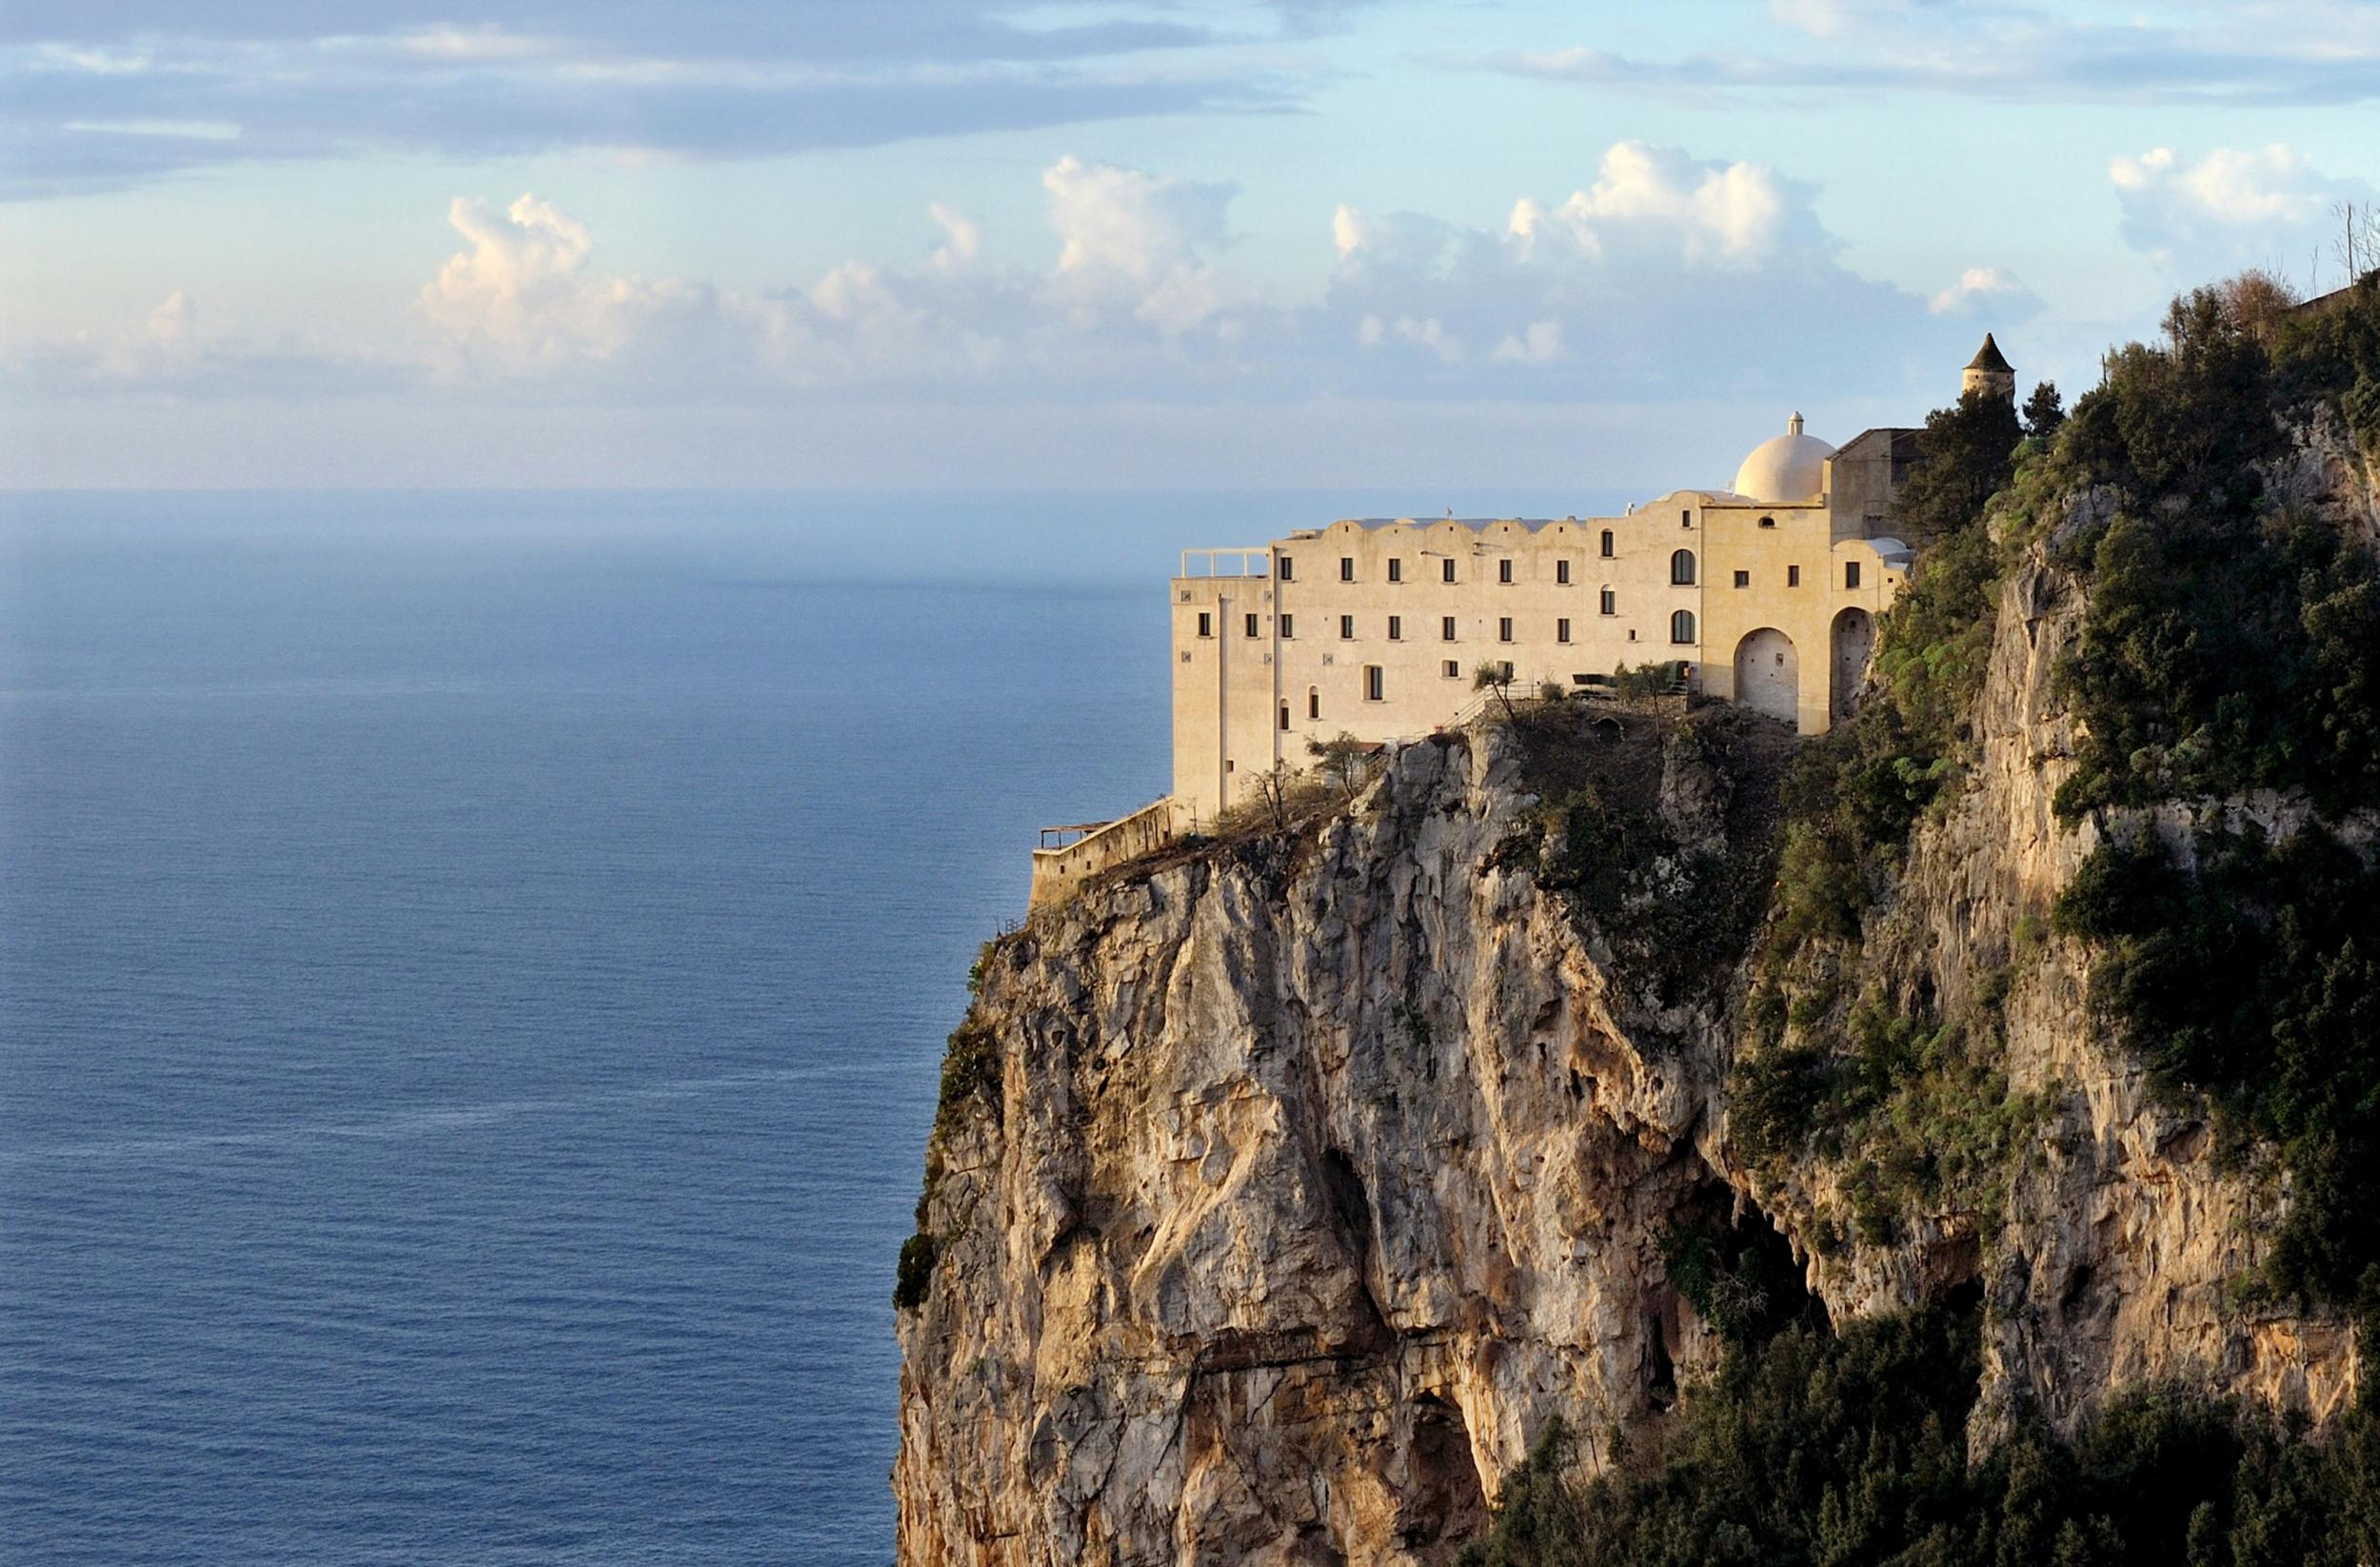 A converted 17th century monastery hanging off a cliffside has become one of the most breathtaking hotels in Italy